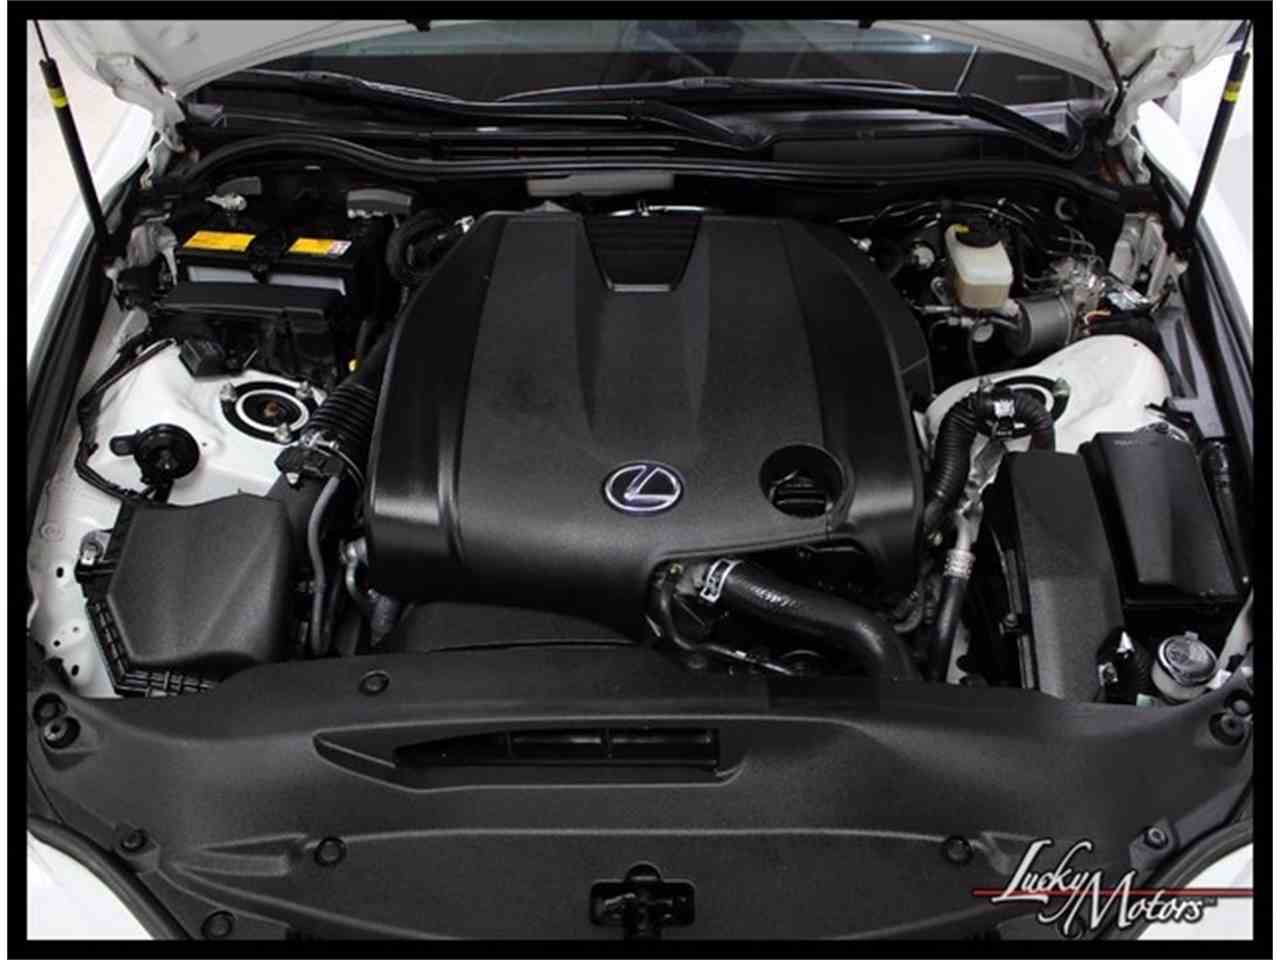 Large Picture of '14 Lexus IS250 located in Elmhurst Illinois Auction Vehicle - MGRE